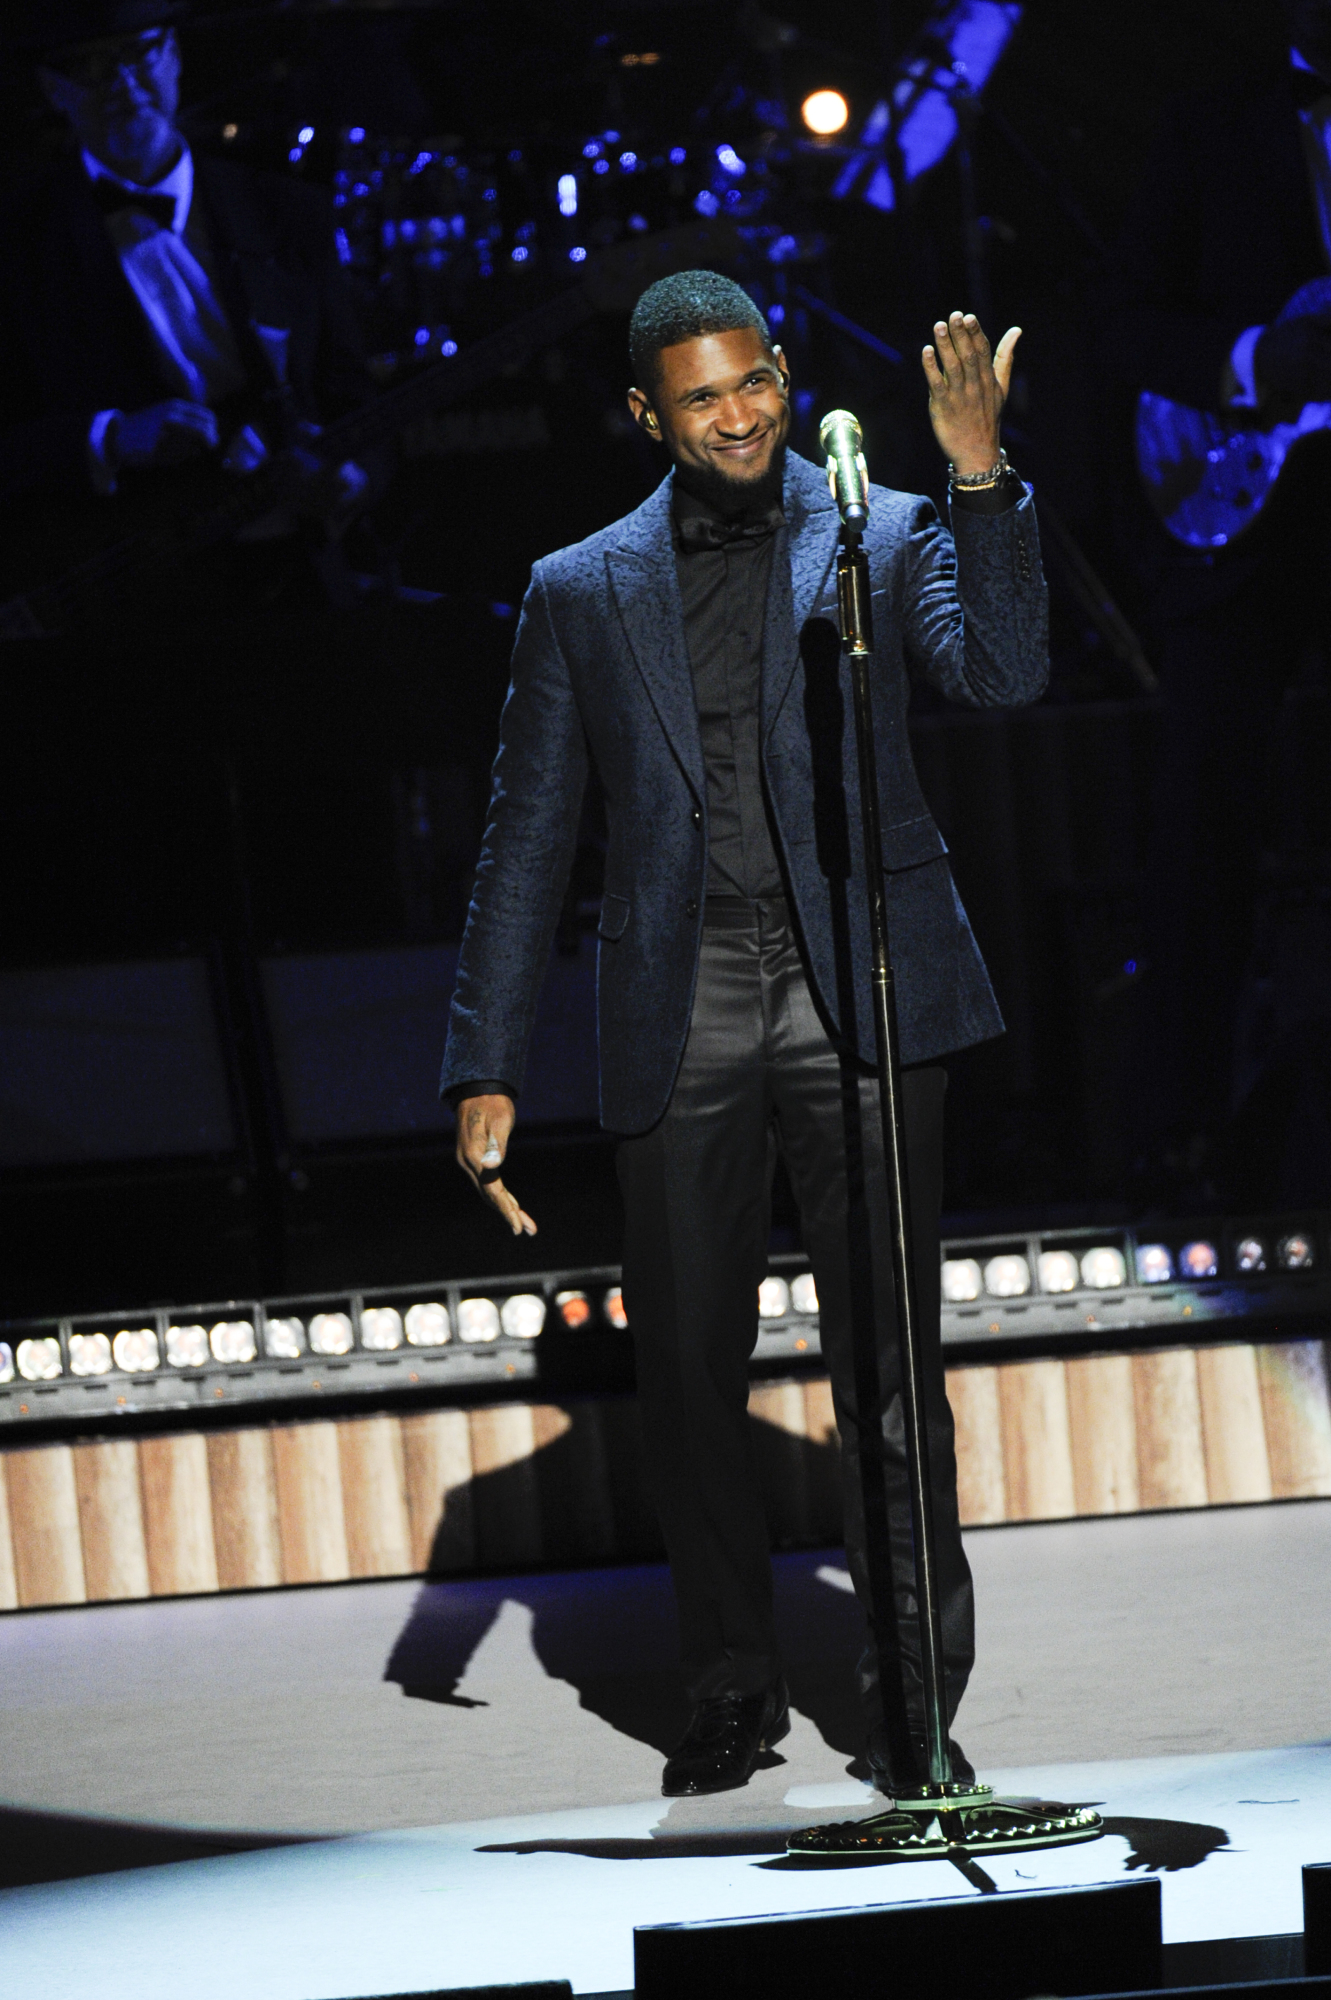 Usher Engages the Crowd